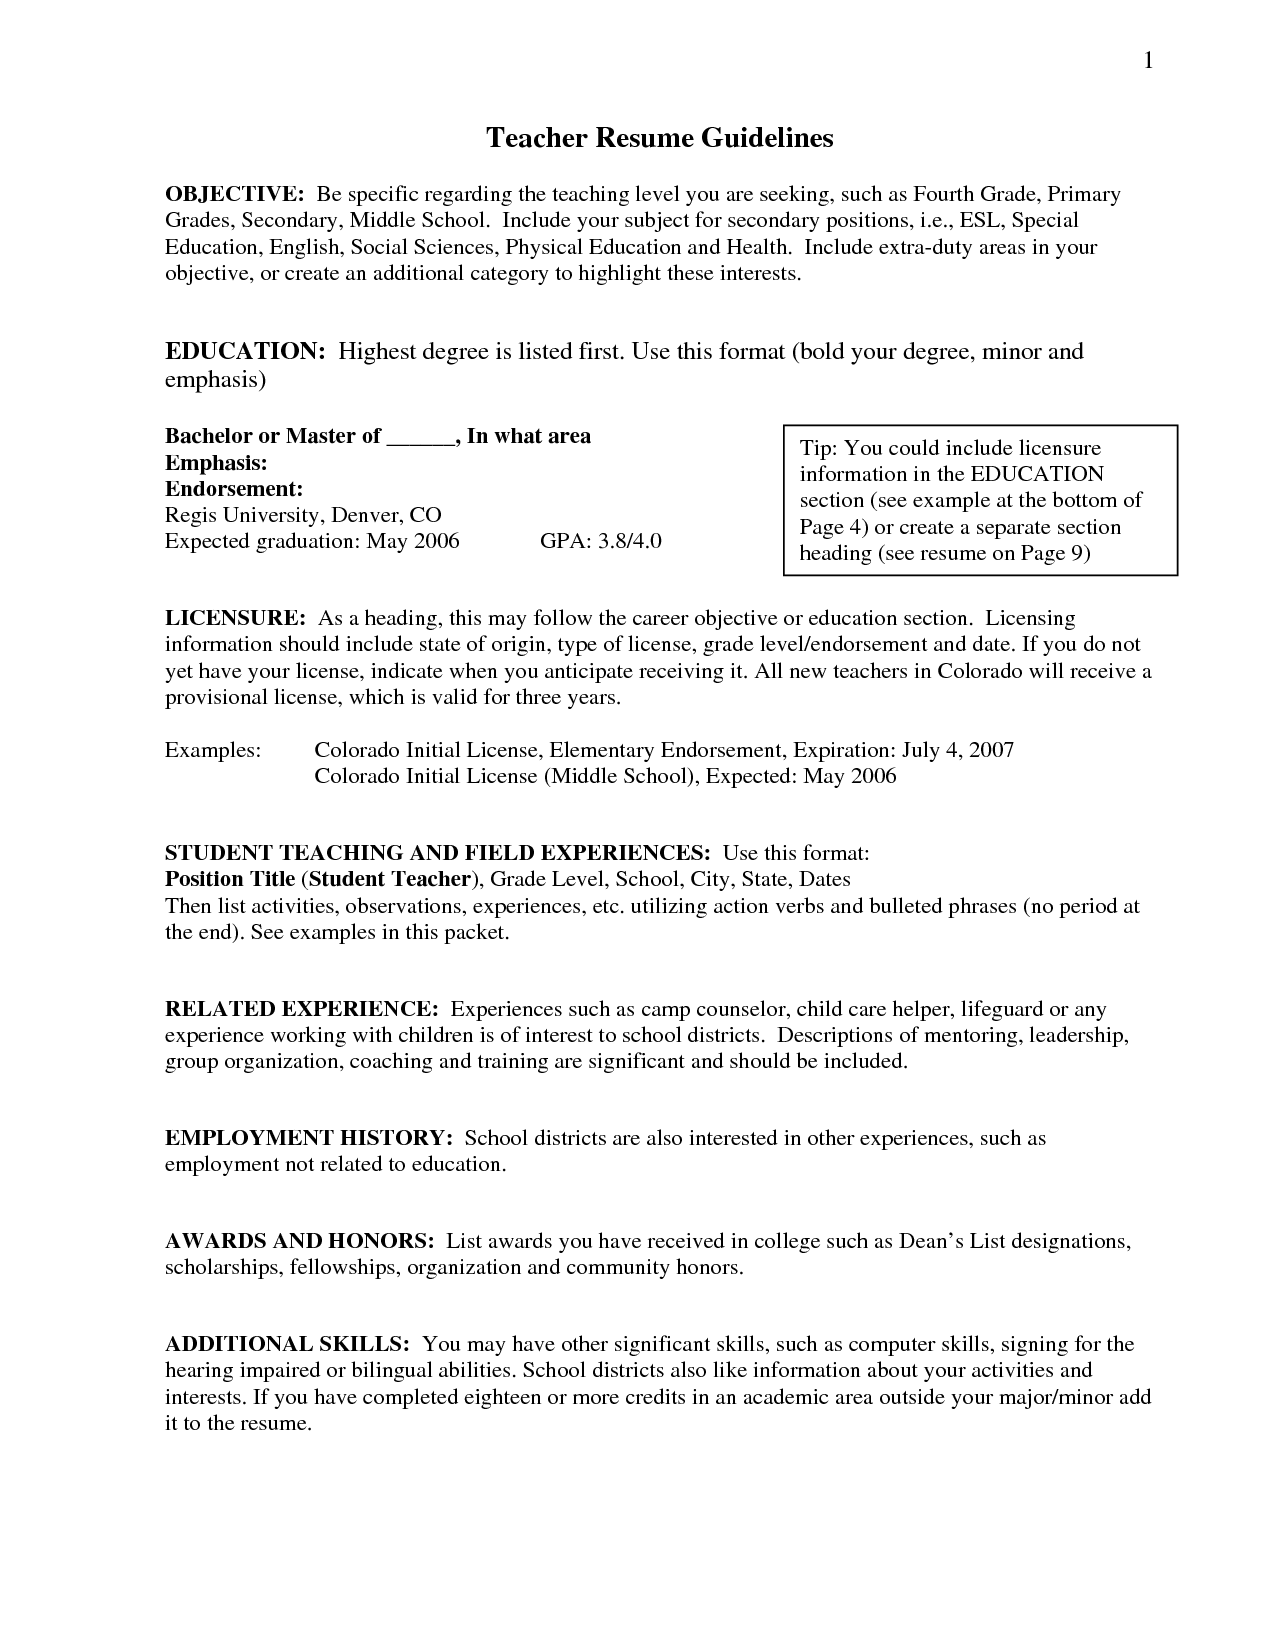 resume objective statement for teacher httpwwwresumecareerinfo - Objective For A Teacher Resume